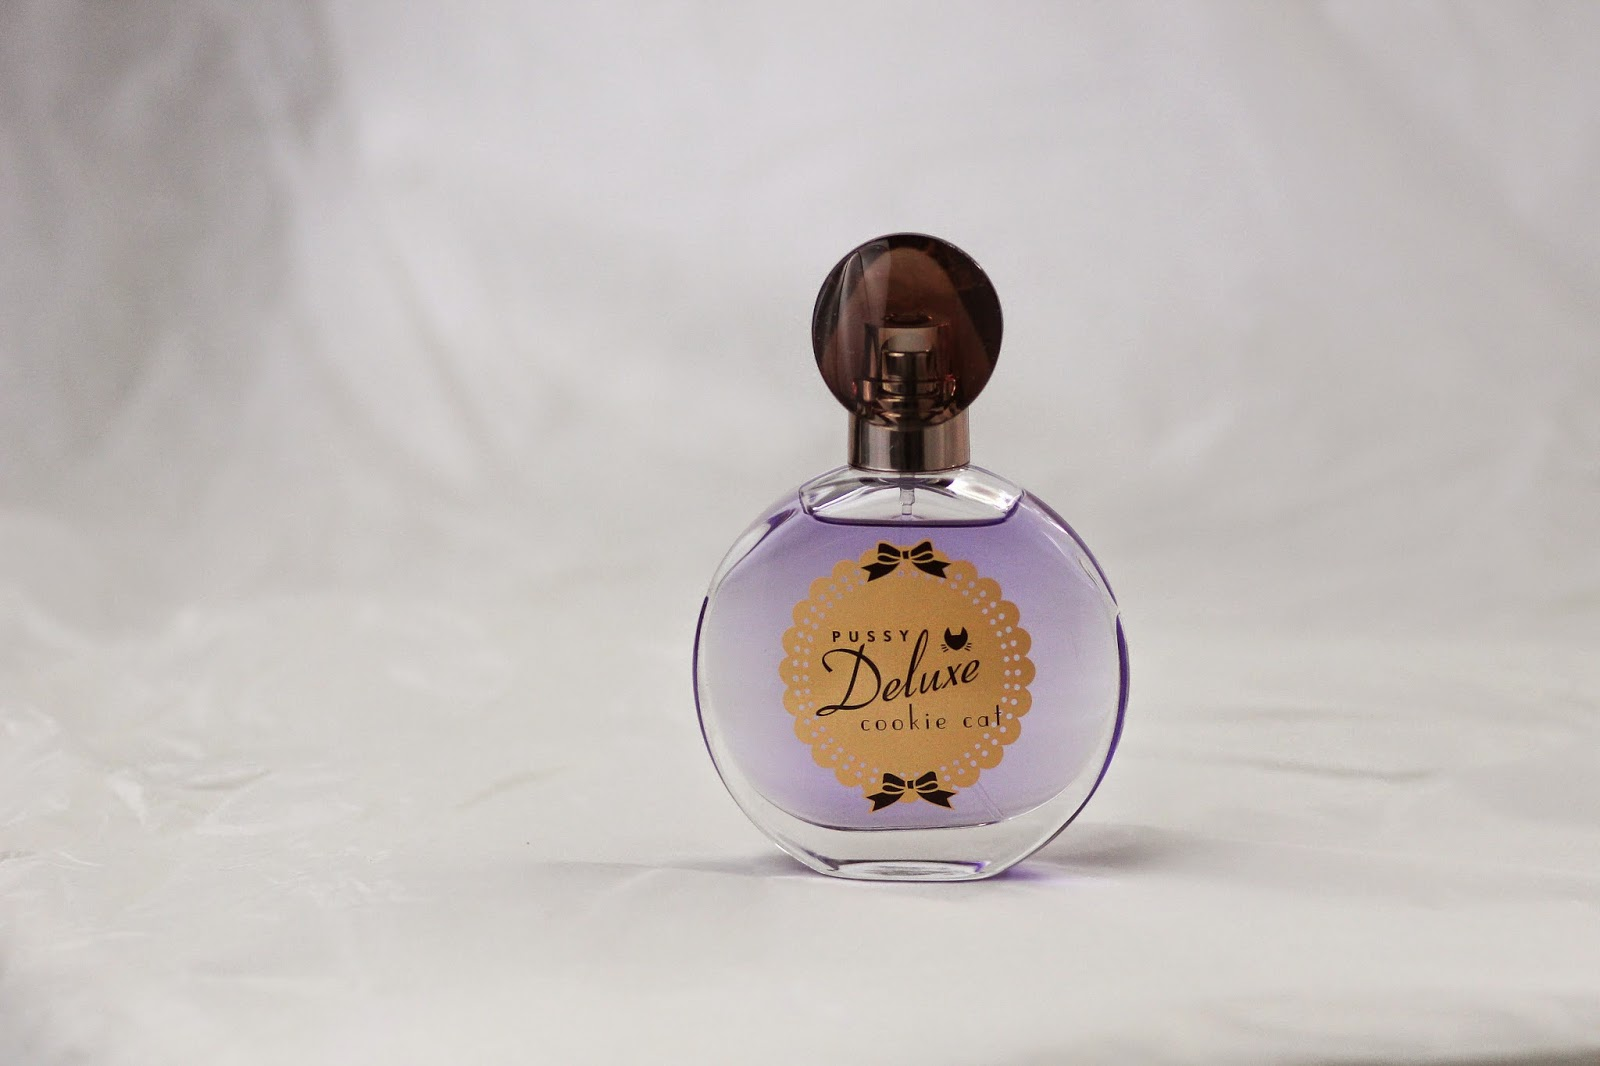 PERFUMES: PUSSY DELUXE PRIZMAHFASHION